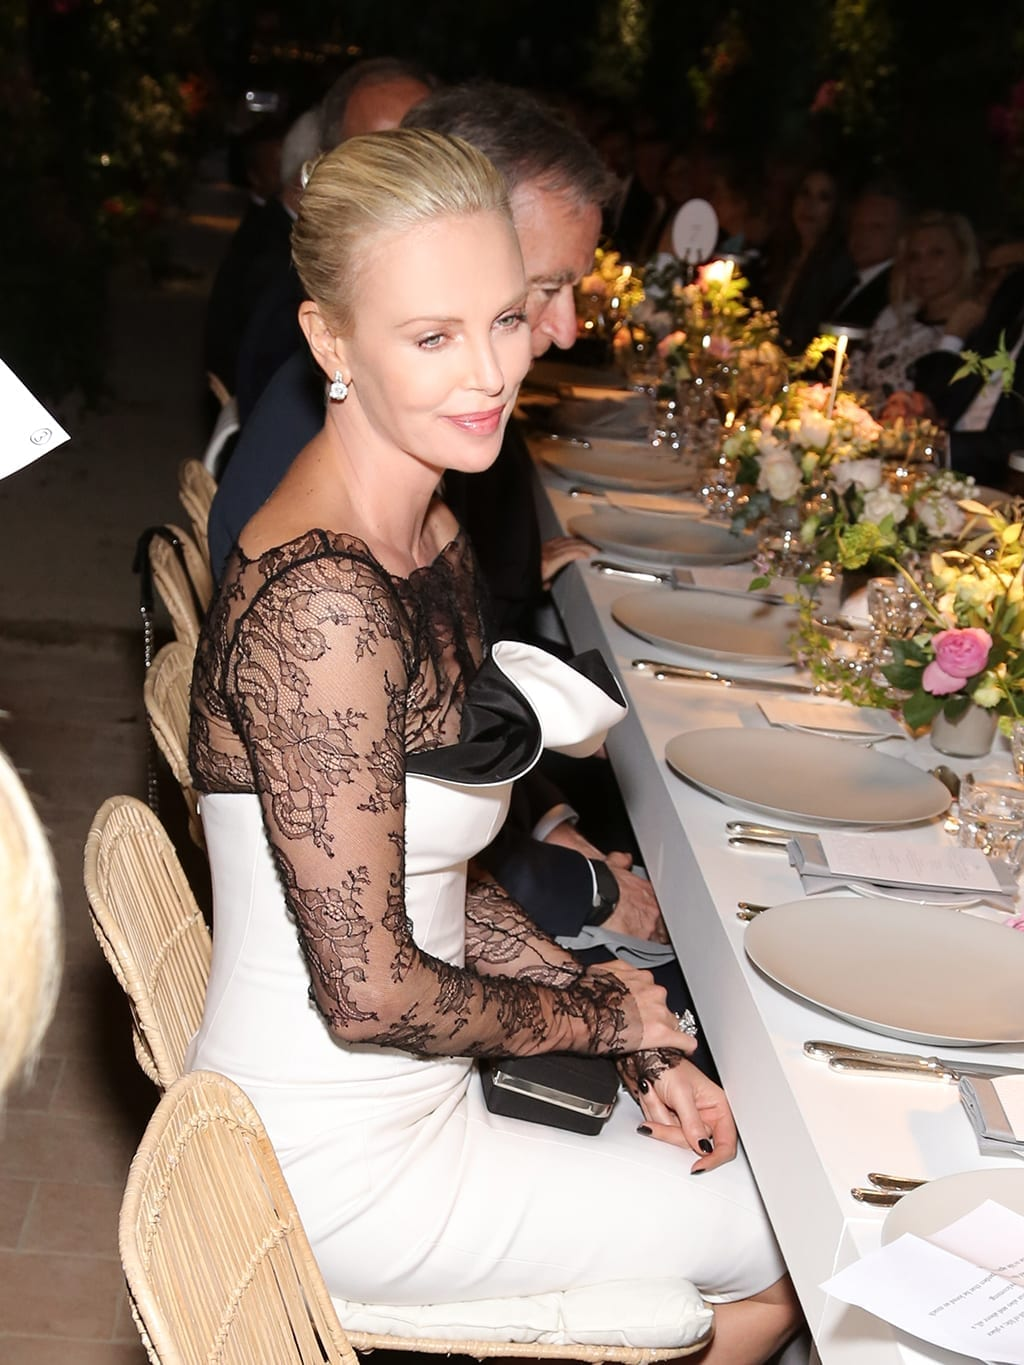 Charlize Theron 2 - ∏Francois Goize, Chateau de la Colle Noire christian dior foto, Chateau de la Colle Noire charlize theron, evento dior, theladycracy.it, elisa bellino, fashion blog 2016, fashion blogger italiane famose 2016, fashion blogger italia 2016, fashion blog, Chateau de la Colle Noire storia, citazioni christian dior, christian dior quotes